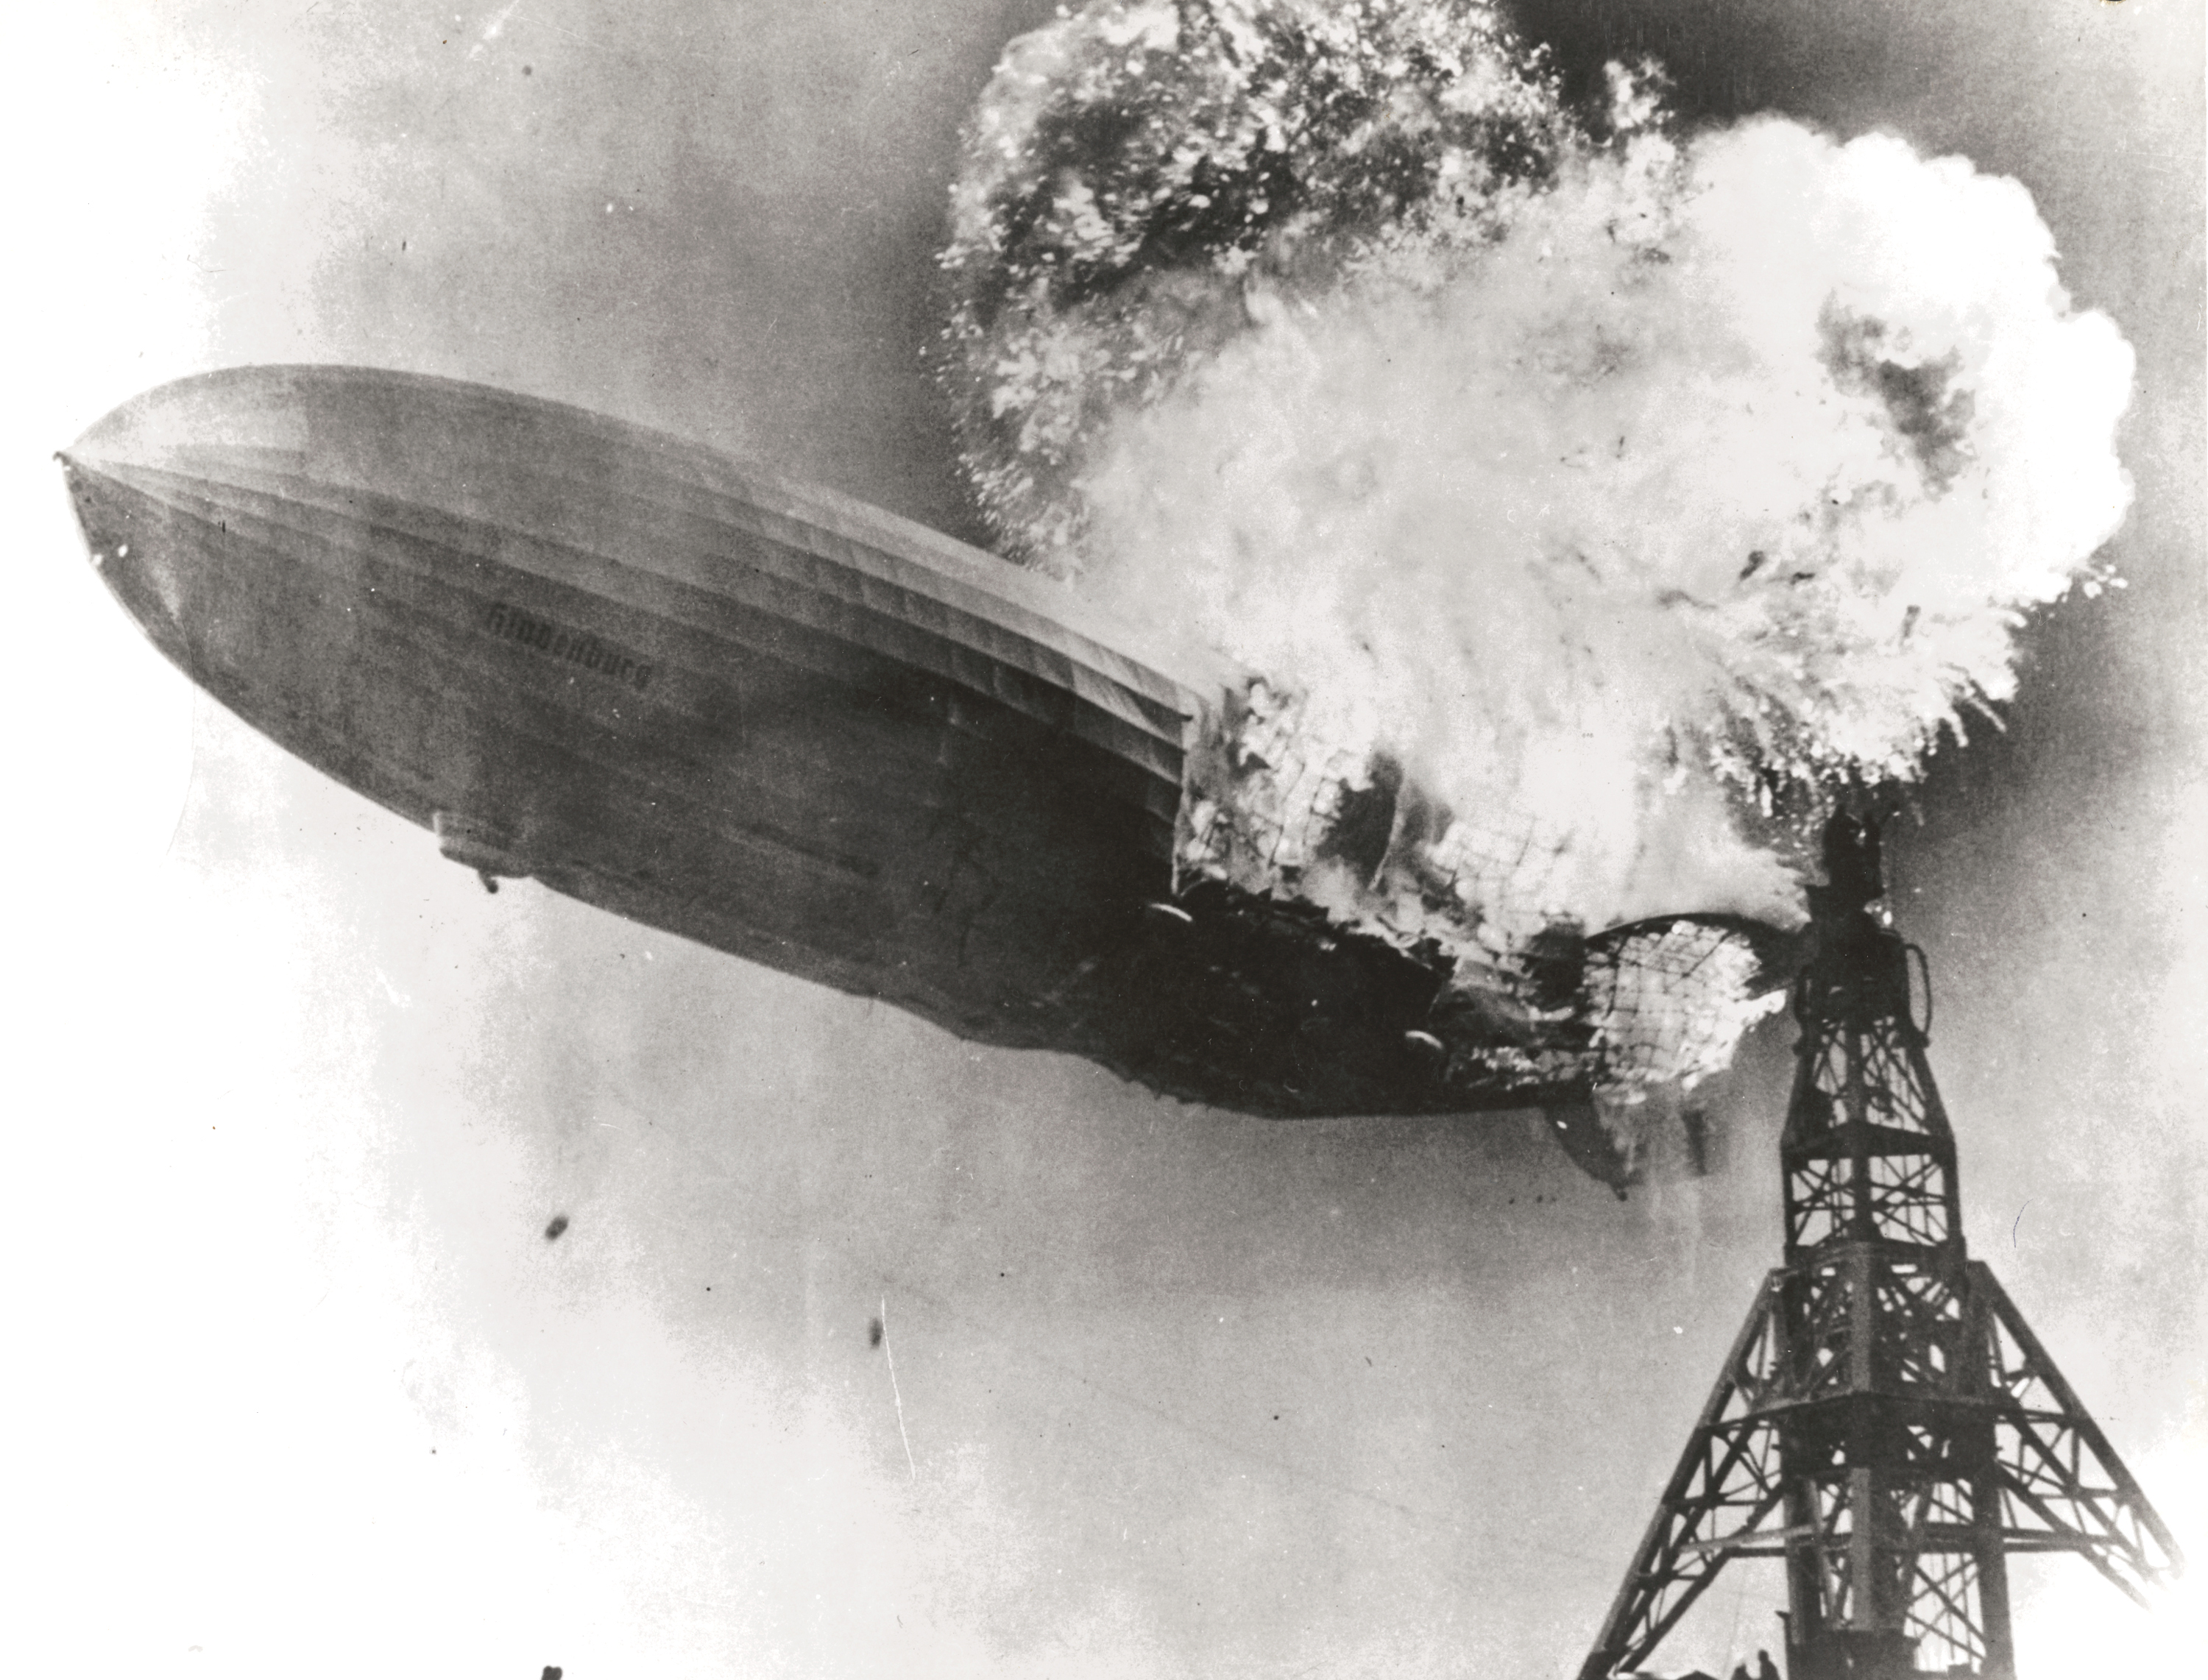 http://upload.wikimedia.org/wikipedia/commons/8/84/Hindenburg_burning.jpg